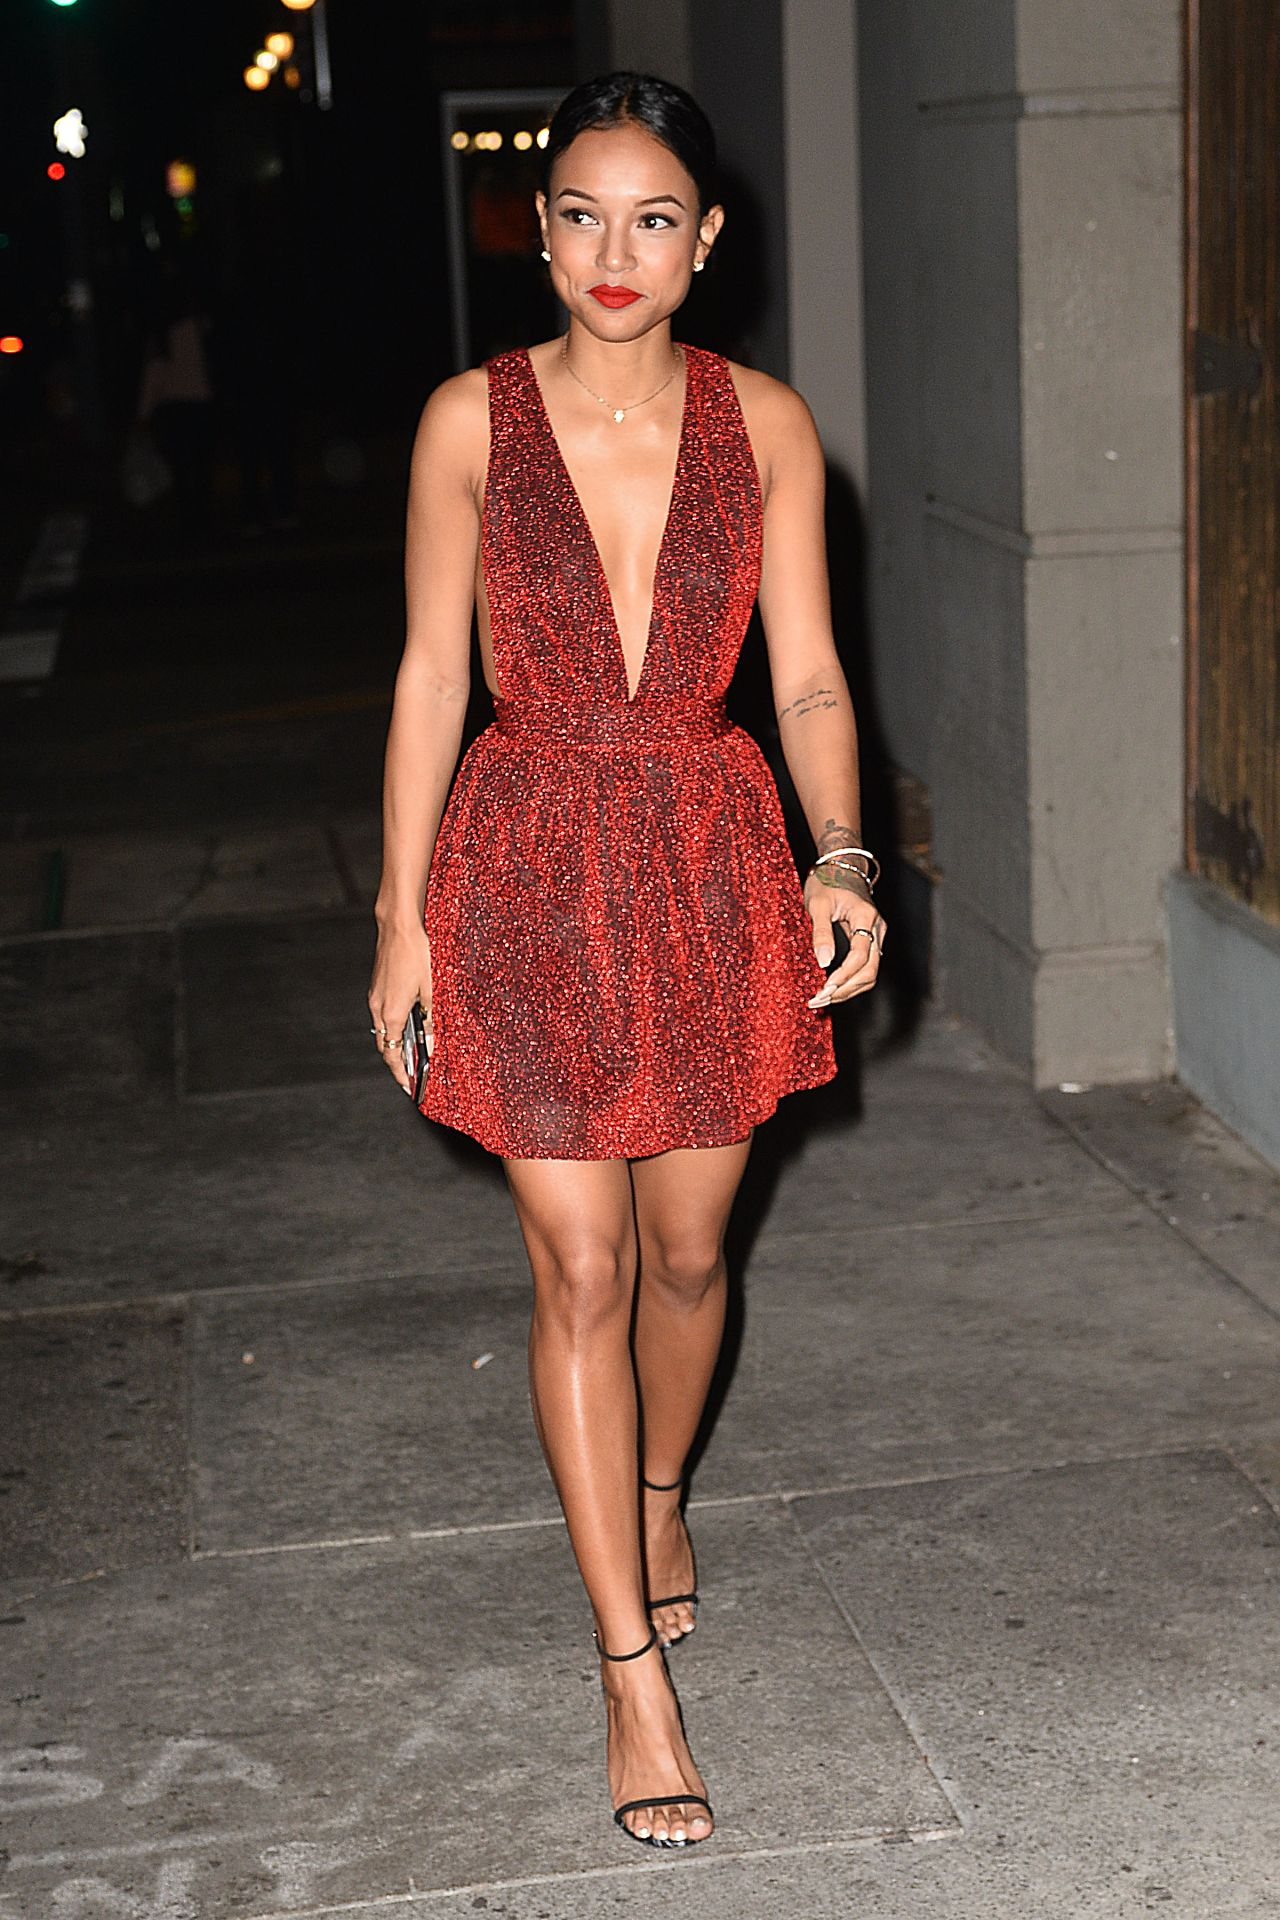 46ccbf5ec6f9 Karrueche Tran in Nasty Gal Red Alert Metallic Shimmer Dress ...